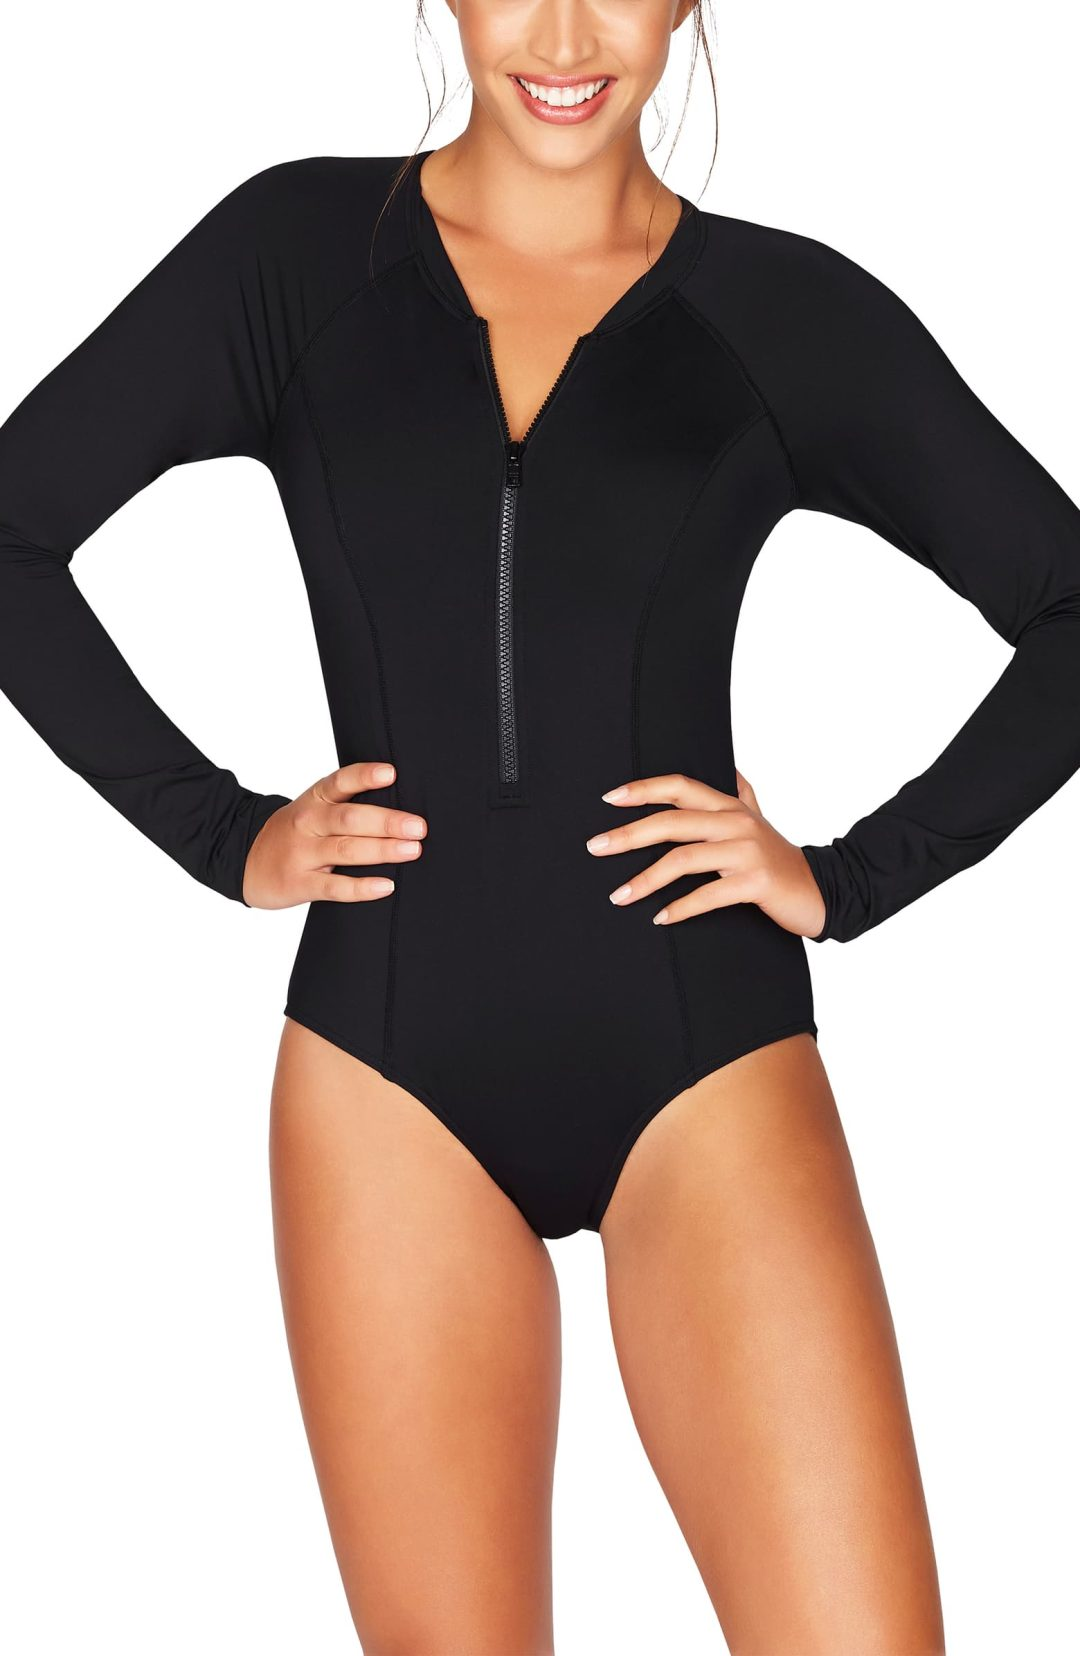 Black long sleeve one piece swimsuit that covers back acne and shoulders